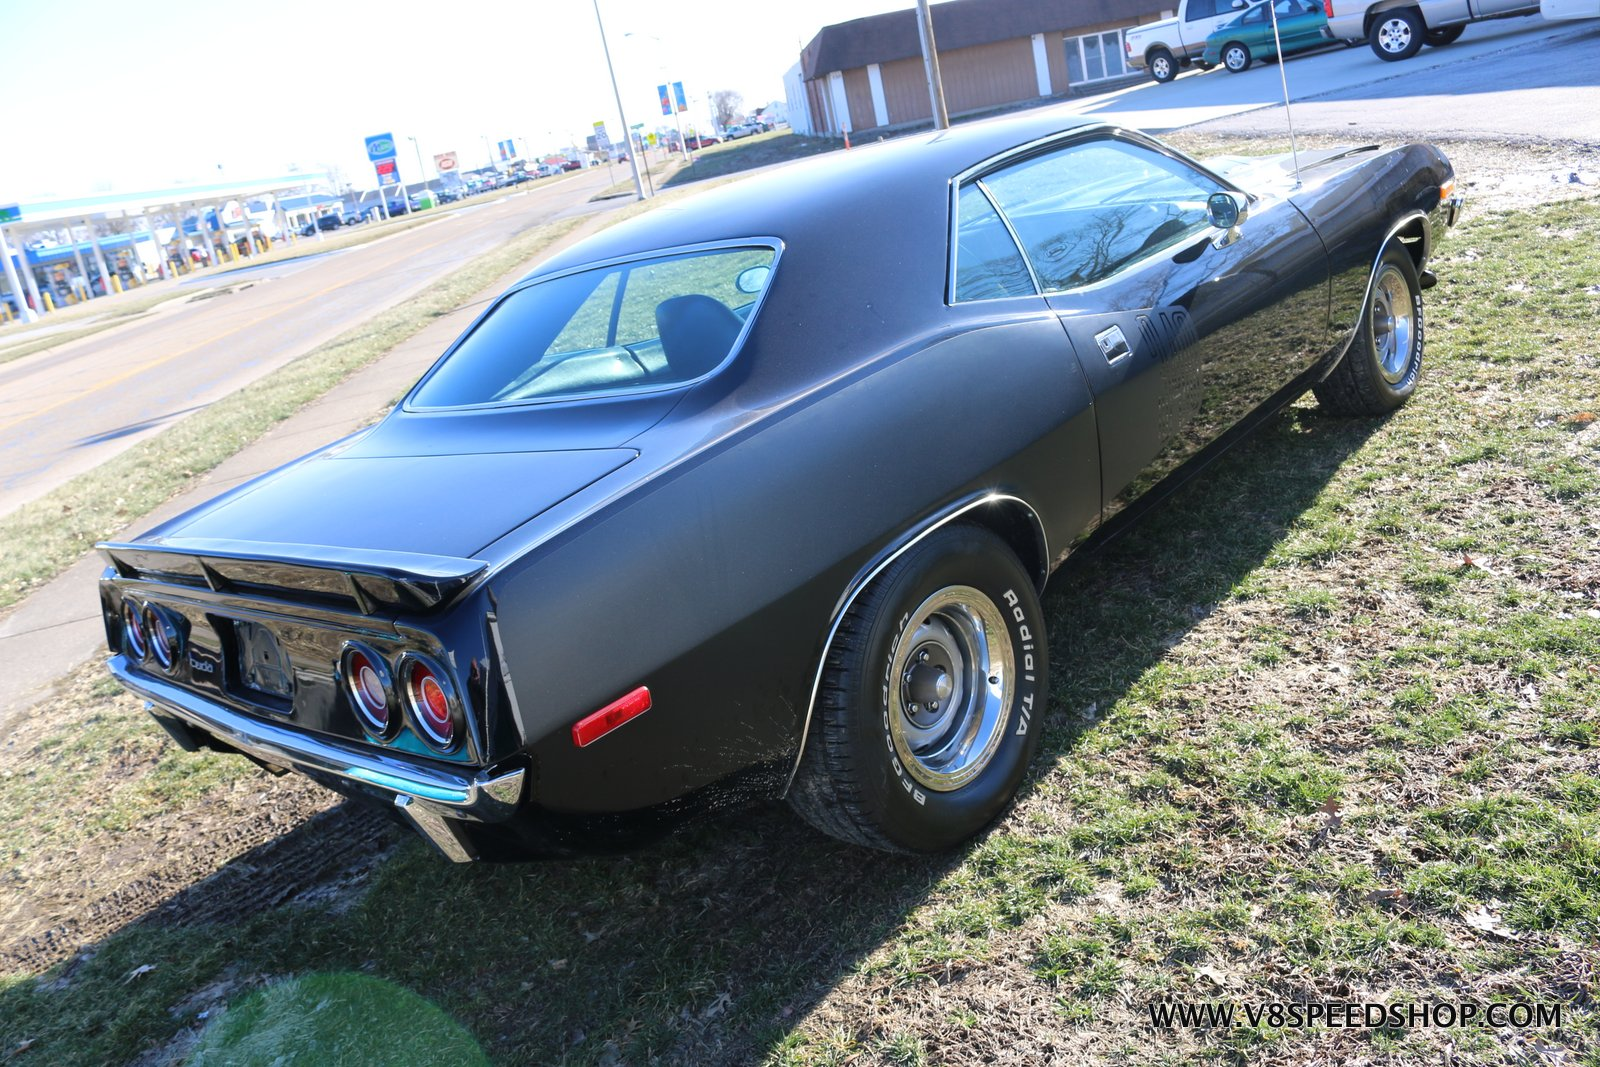 1972 Plymouth 'Cuda Performance Upgrades at the V8 Speed & Resto Shop